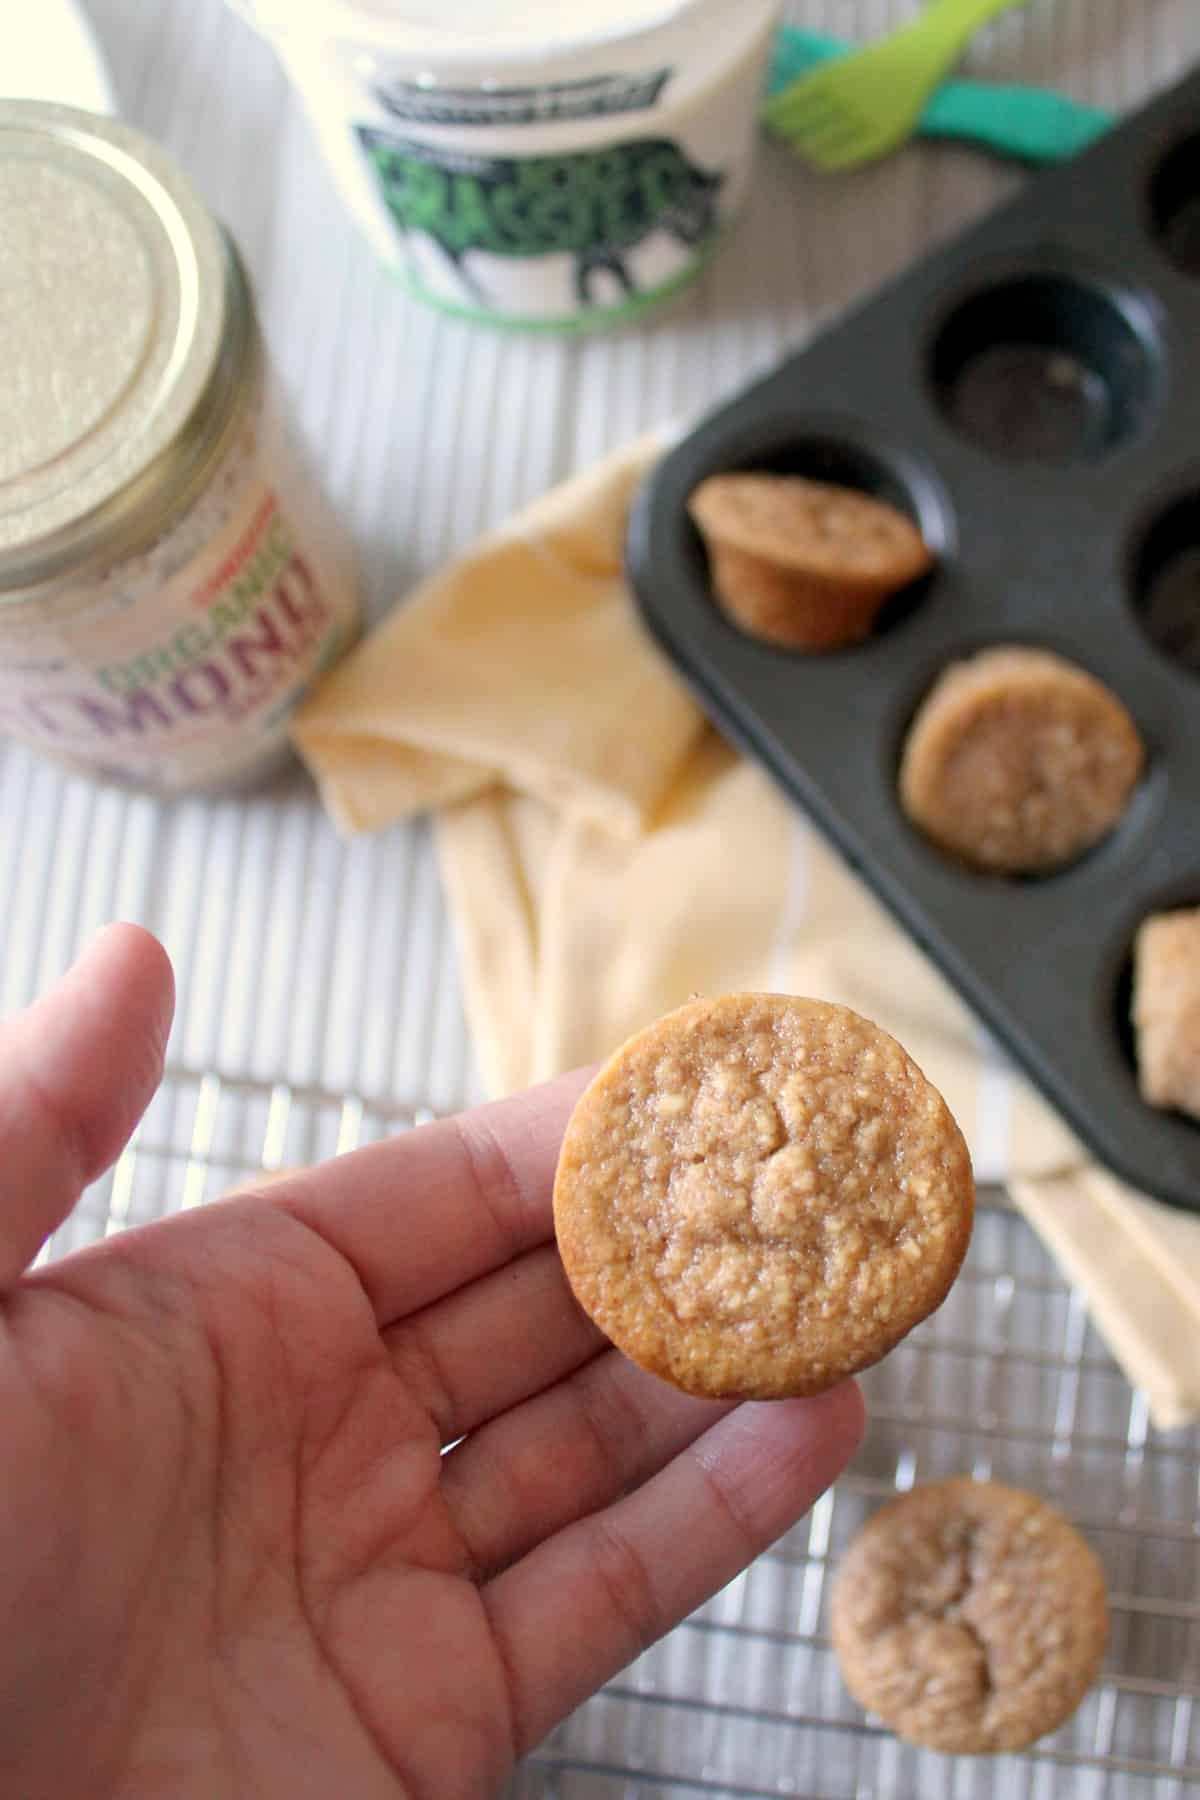 Banana Oat Mini Muffins are an easy snack made entirely in the food processor! Made with oat flour, almond butter & yogurt and sweetened with ripe banana and honey for wholesome munching any time.